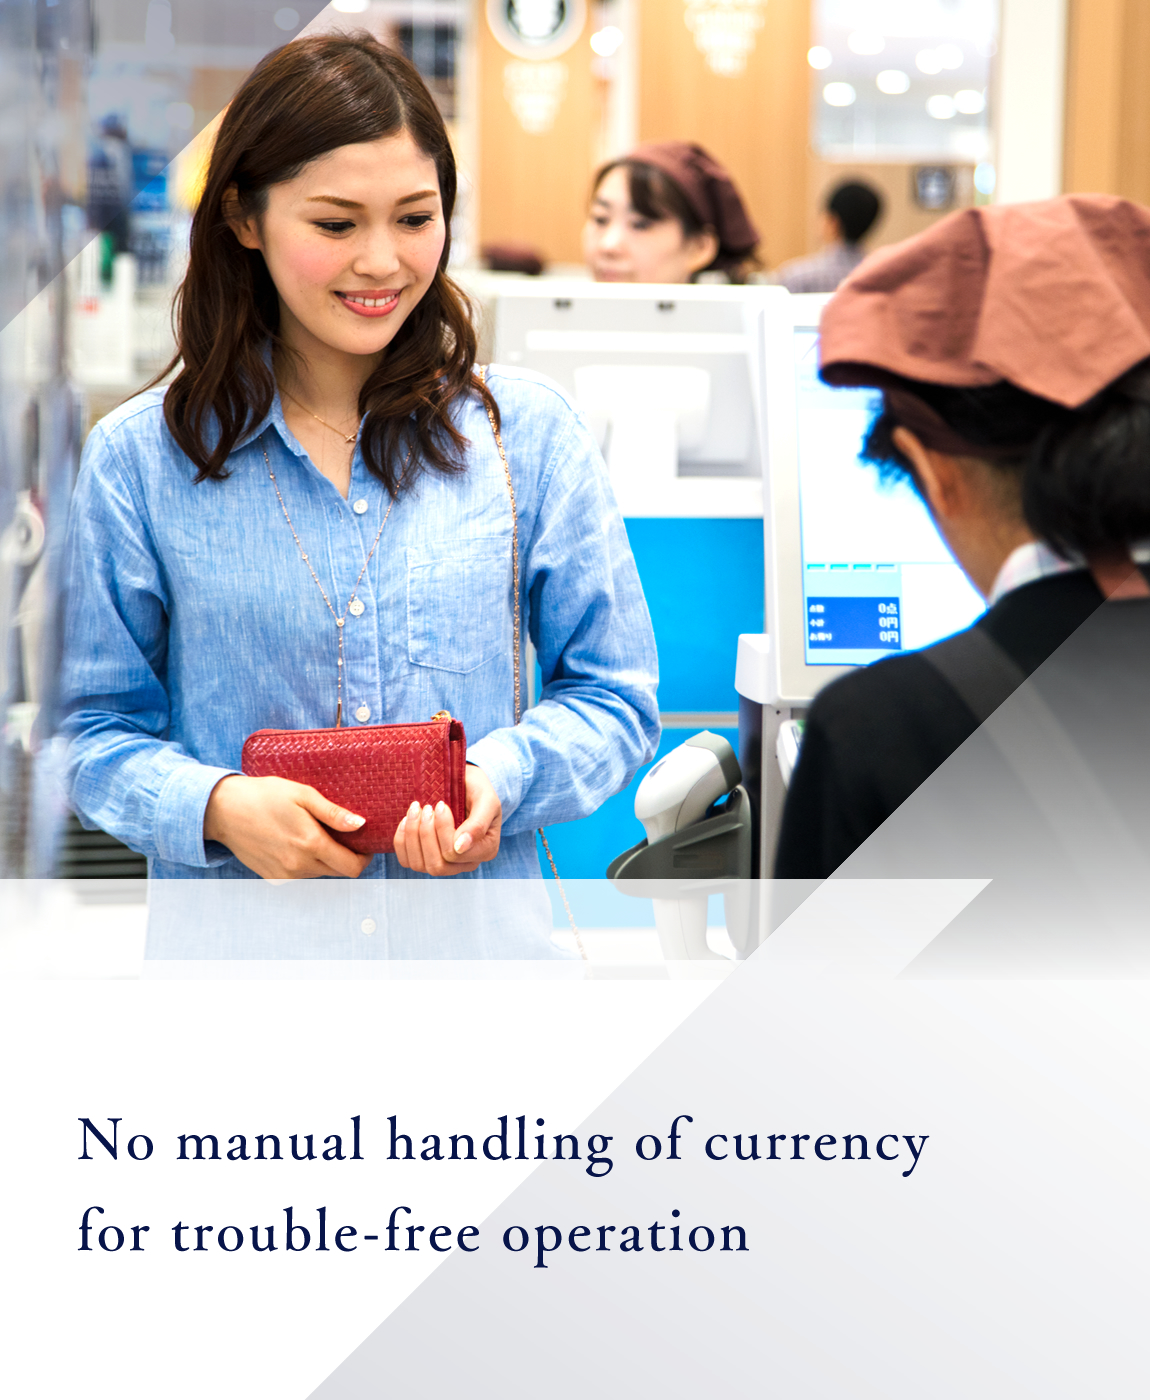 No manual handling of currency for trouble-free operation